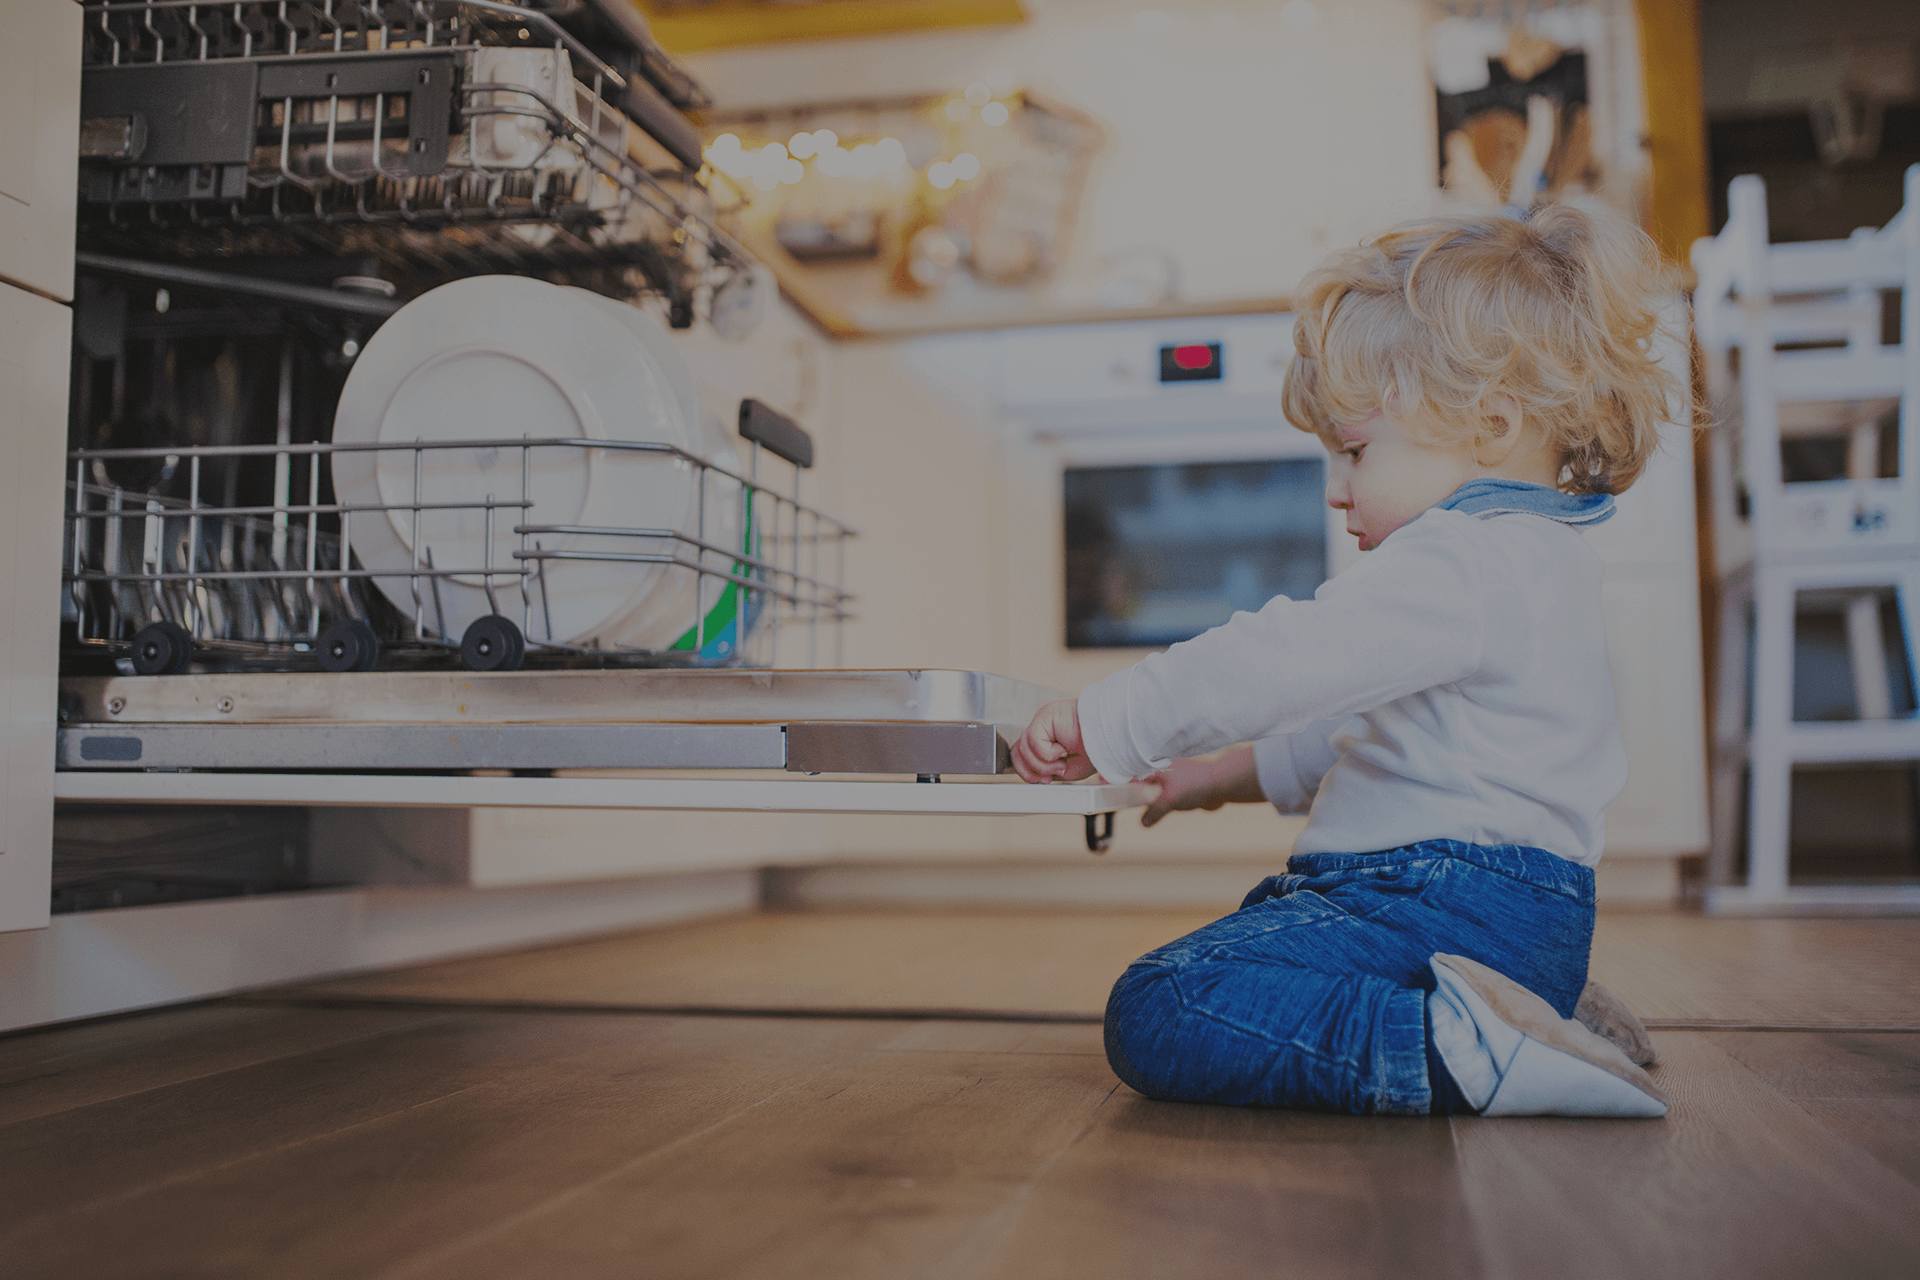 Electrical Wiring Services for Appliances at home